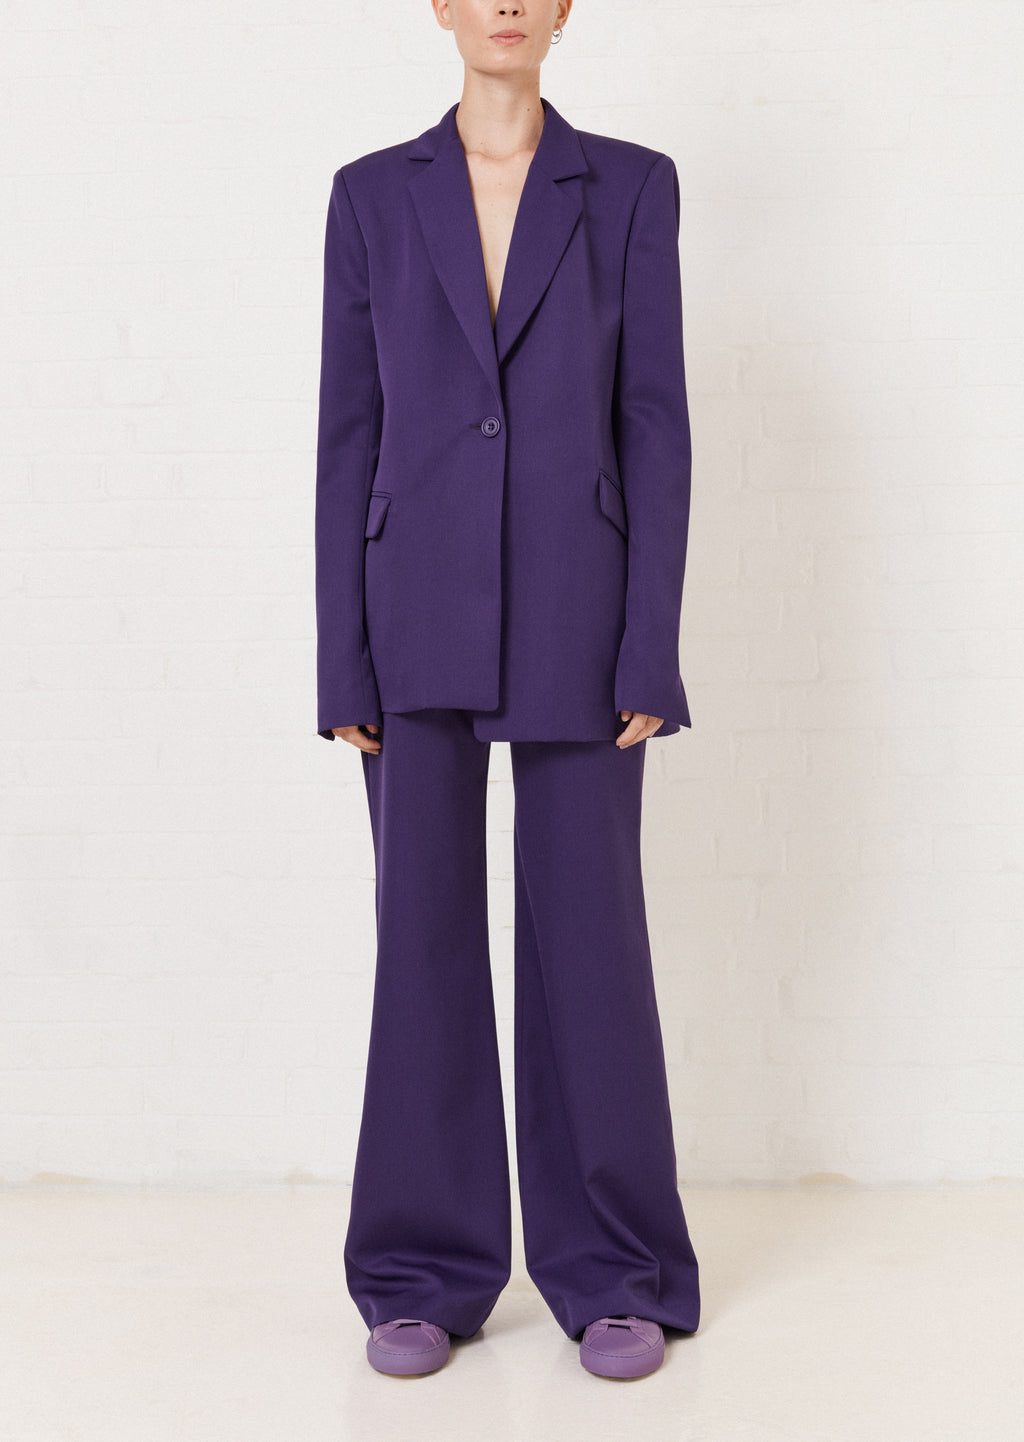 Purple Tailored Suit Jacket